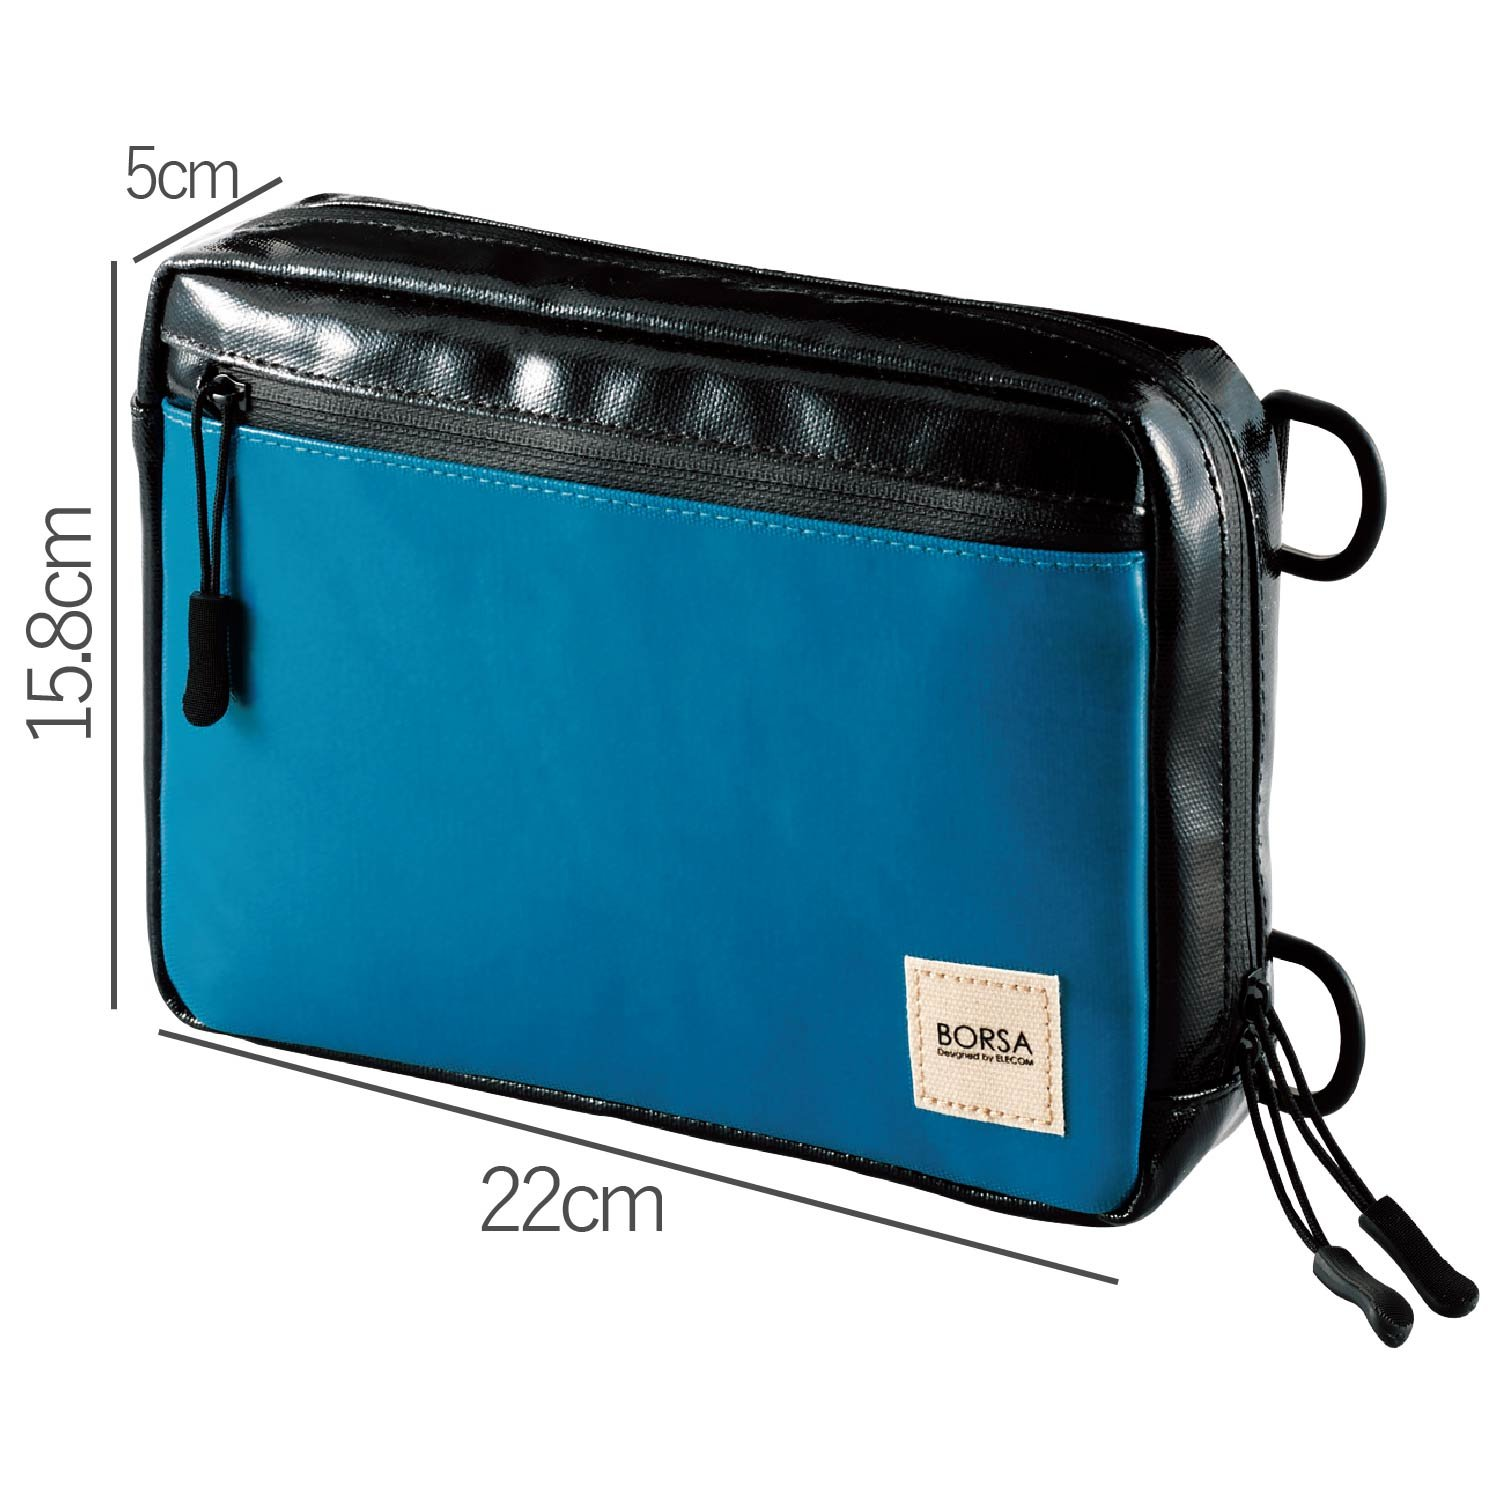 Elecom Bag in Bag Gadget Pouch with Waterproof Zipper Blue BMA-GP06BU